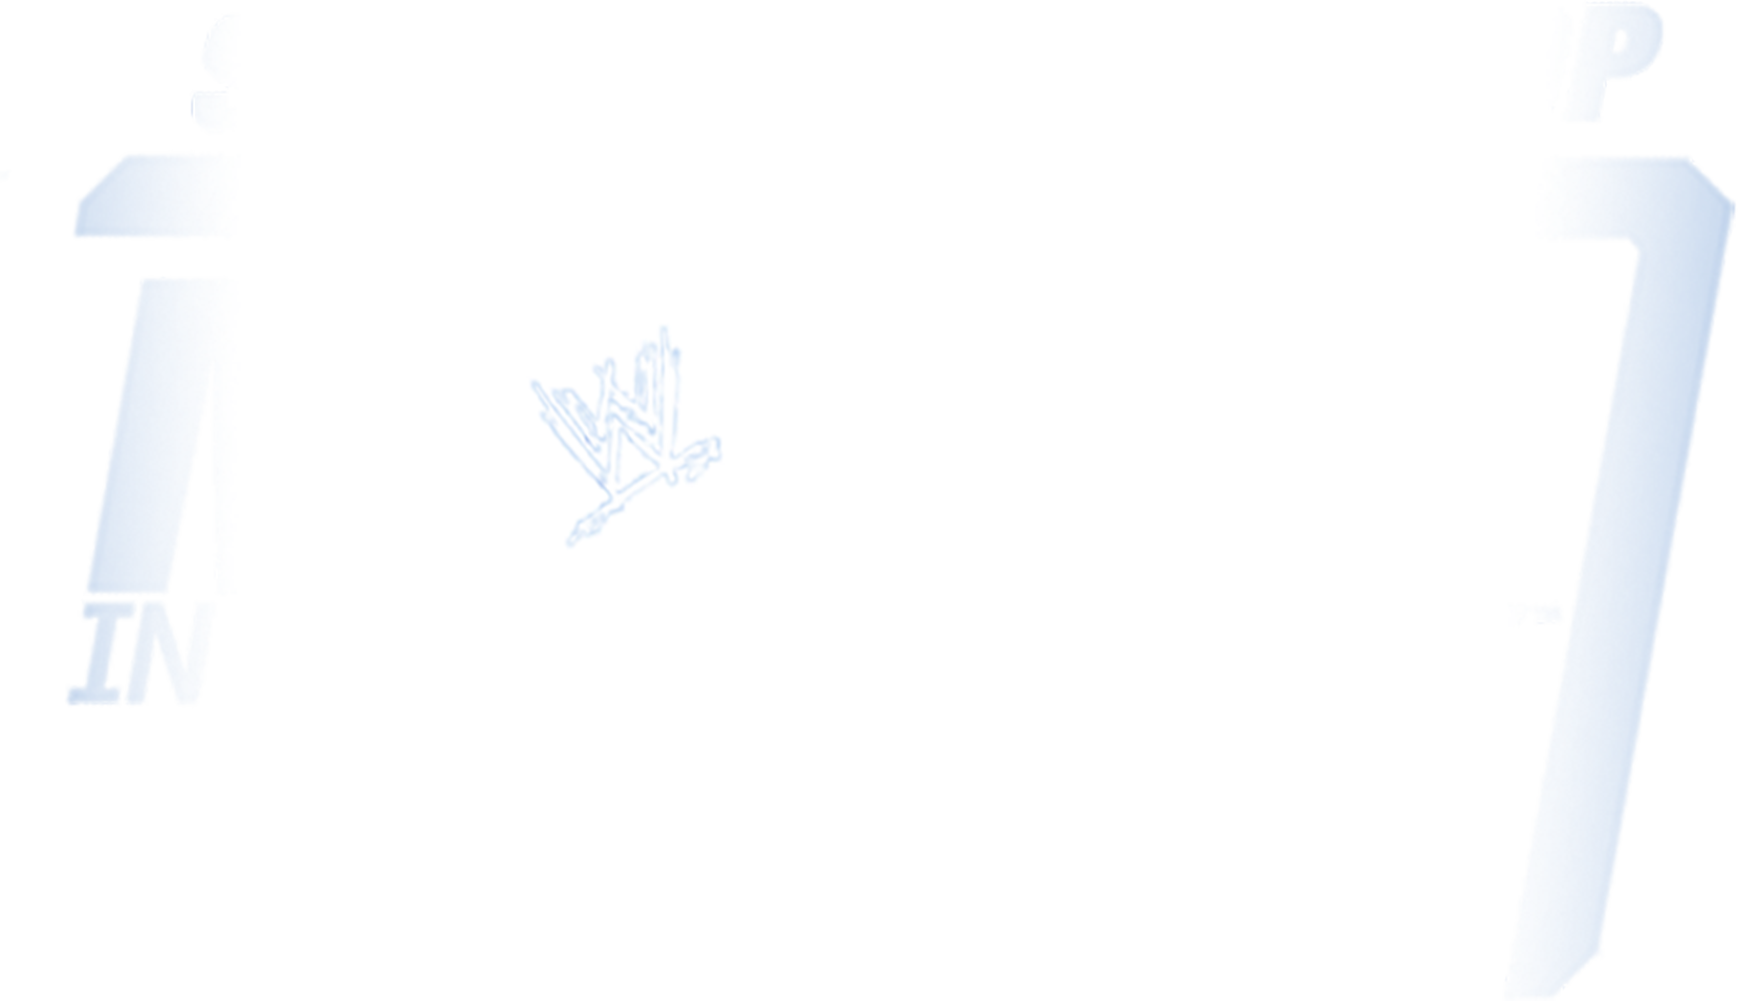 Straight to the Top: The Money in the Bank Anthology